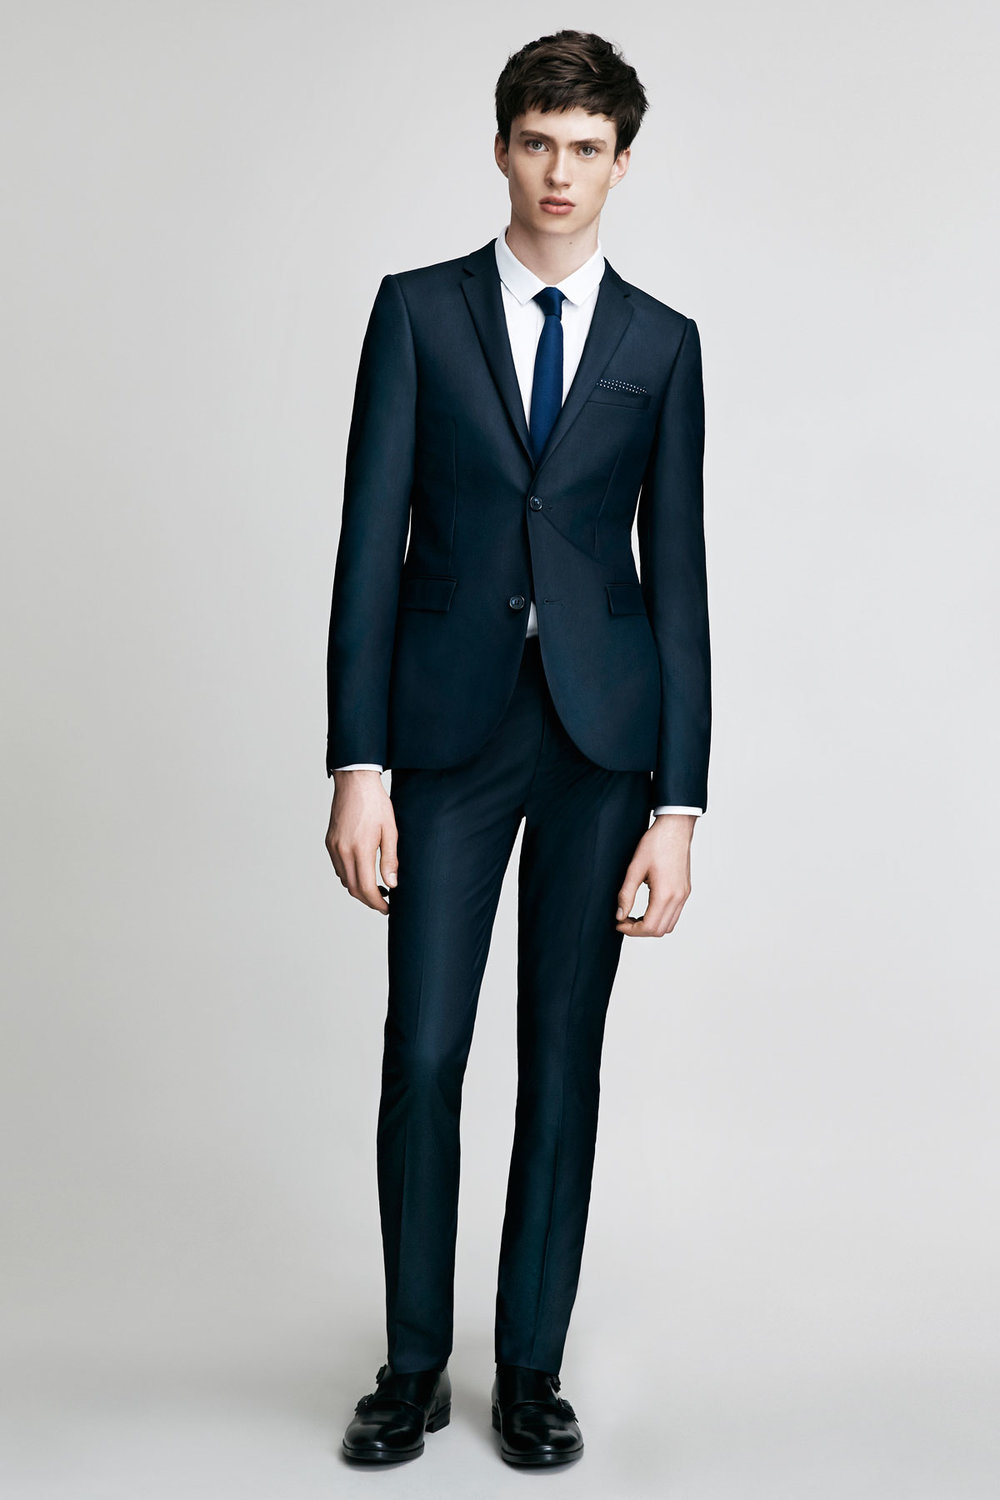 The simple navy suit - Taking items from our essential list we have curated the most versatile and wide spread look for the corporate jungle. A well fitted, bespoke suit starts our list off for a busy day of goal setting.  P.s. the navy suit is the most versatile of the suits, appropriate for the office, weddings, parties, and when traveling.